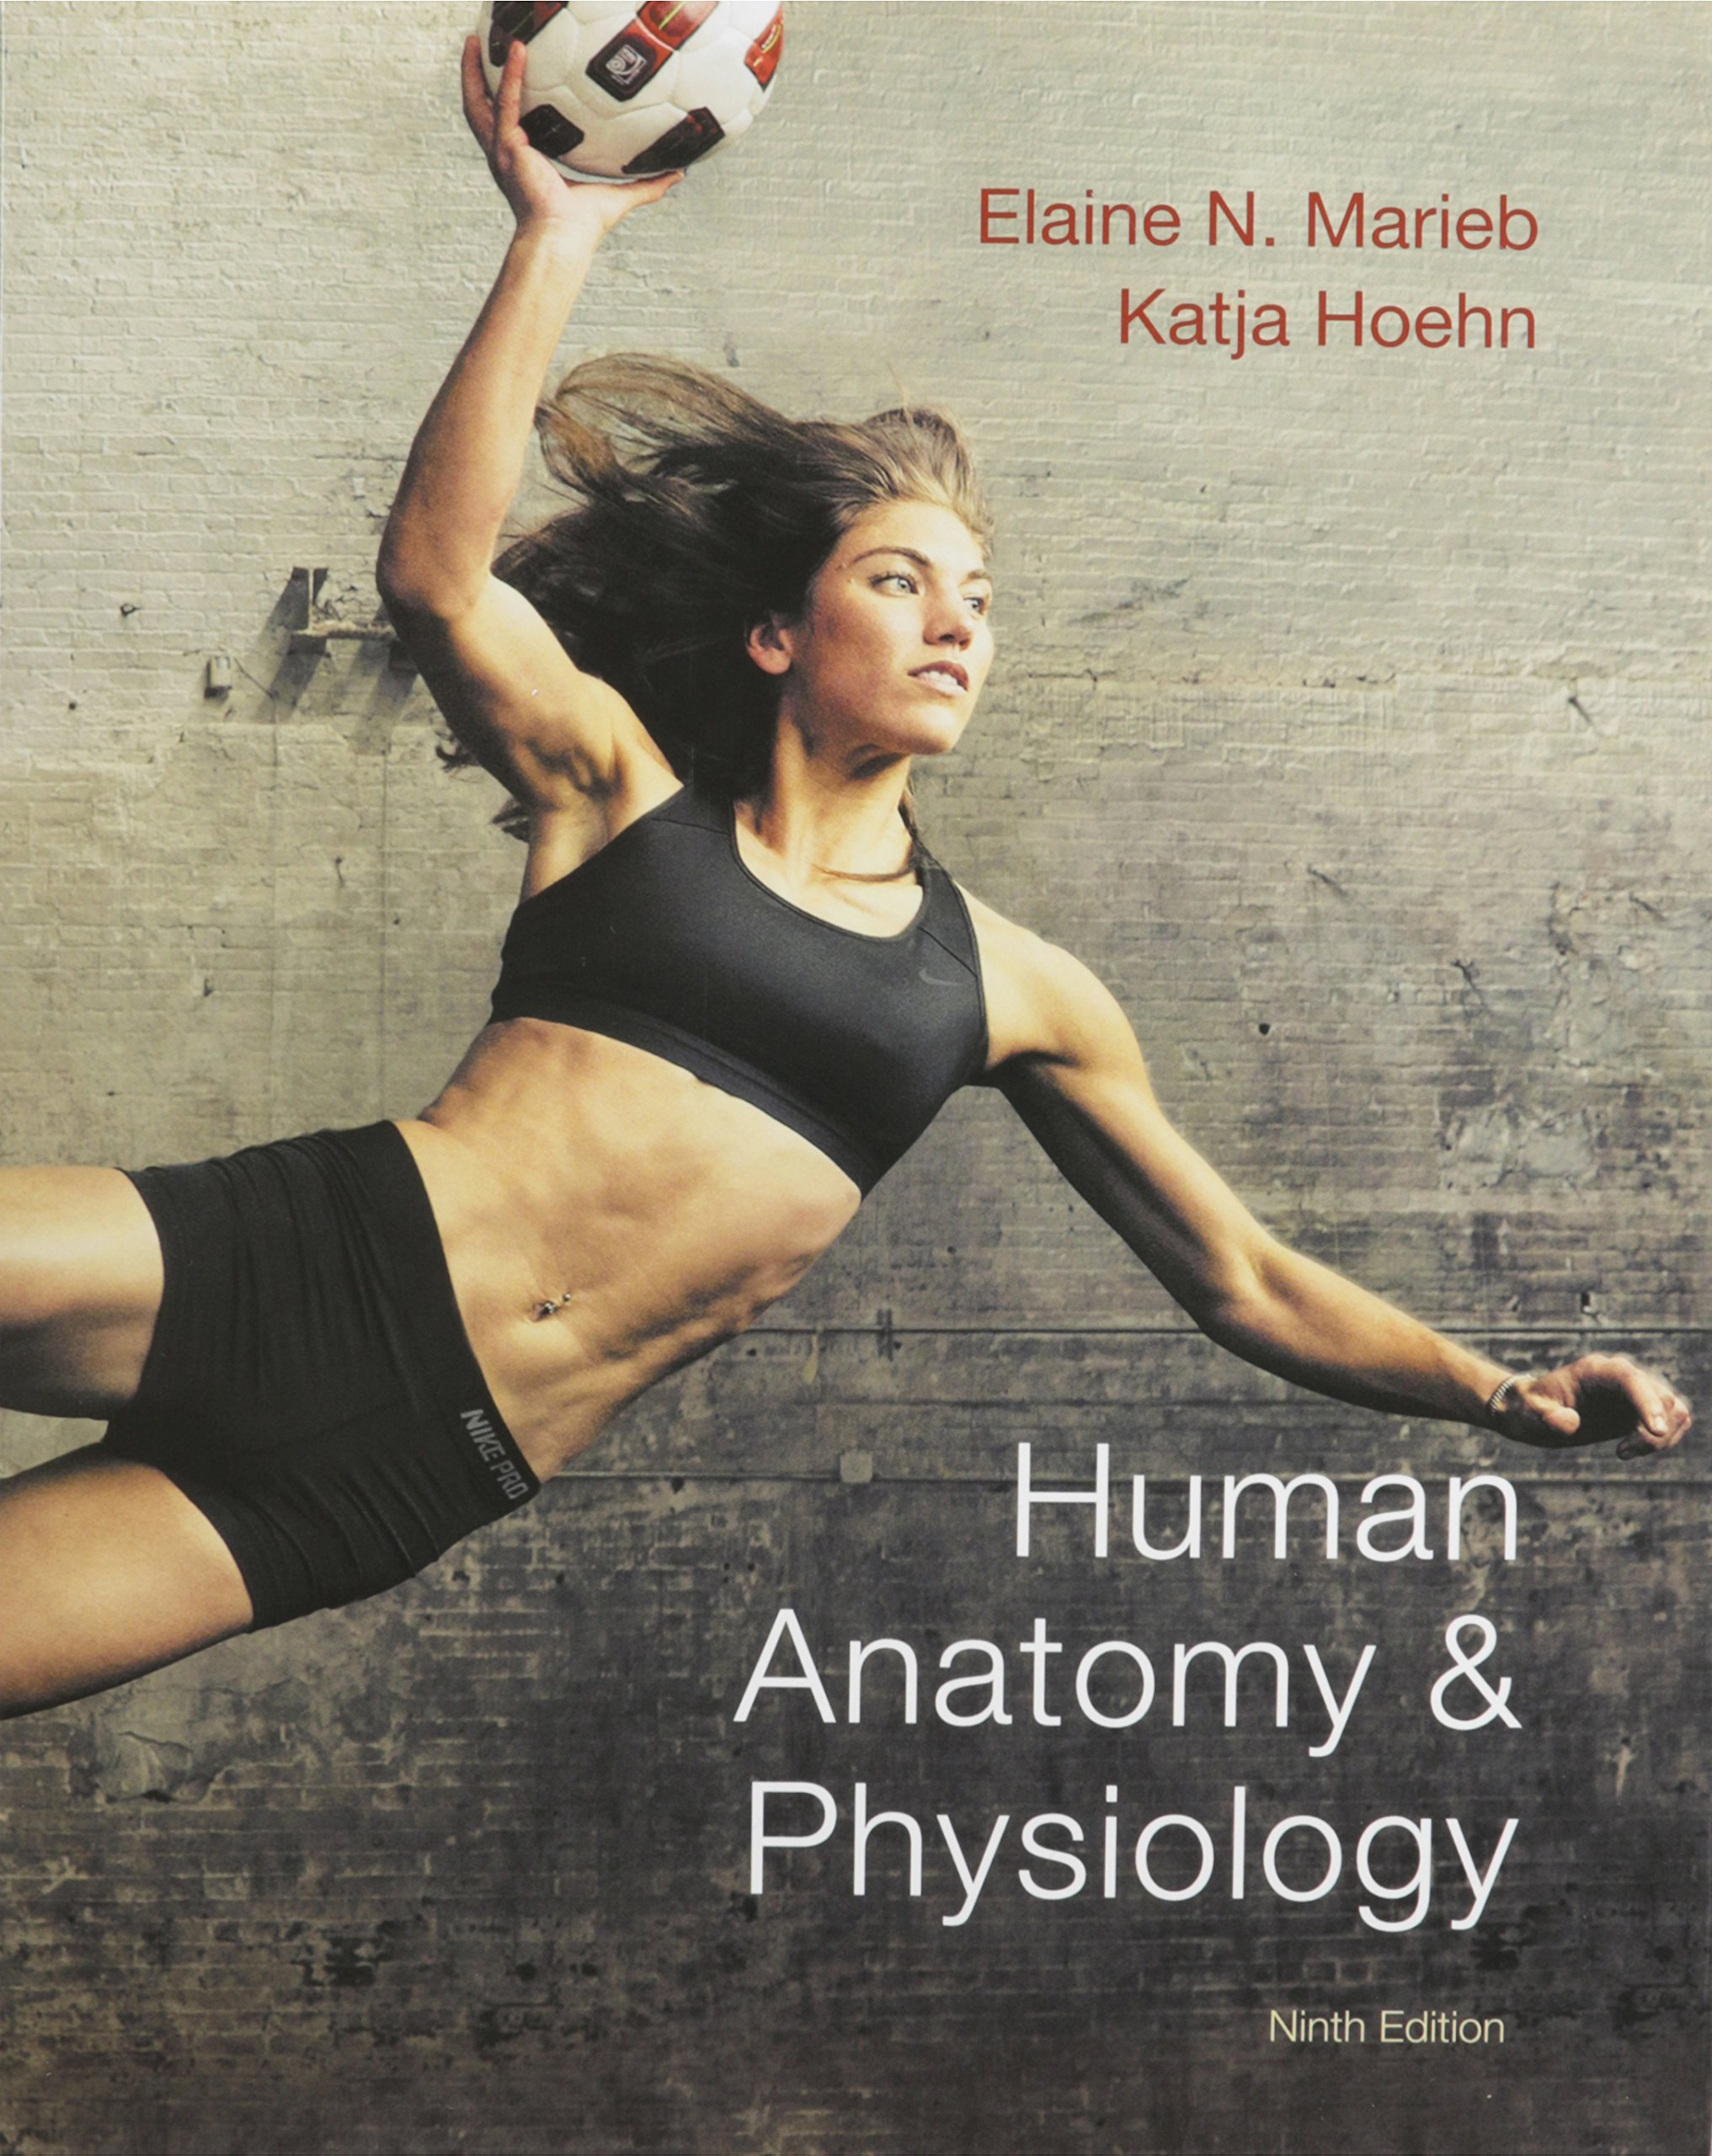 Human Anatomy & Physiology 9th Ed. + Laboratory Manual, Main Version ...